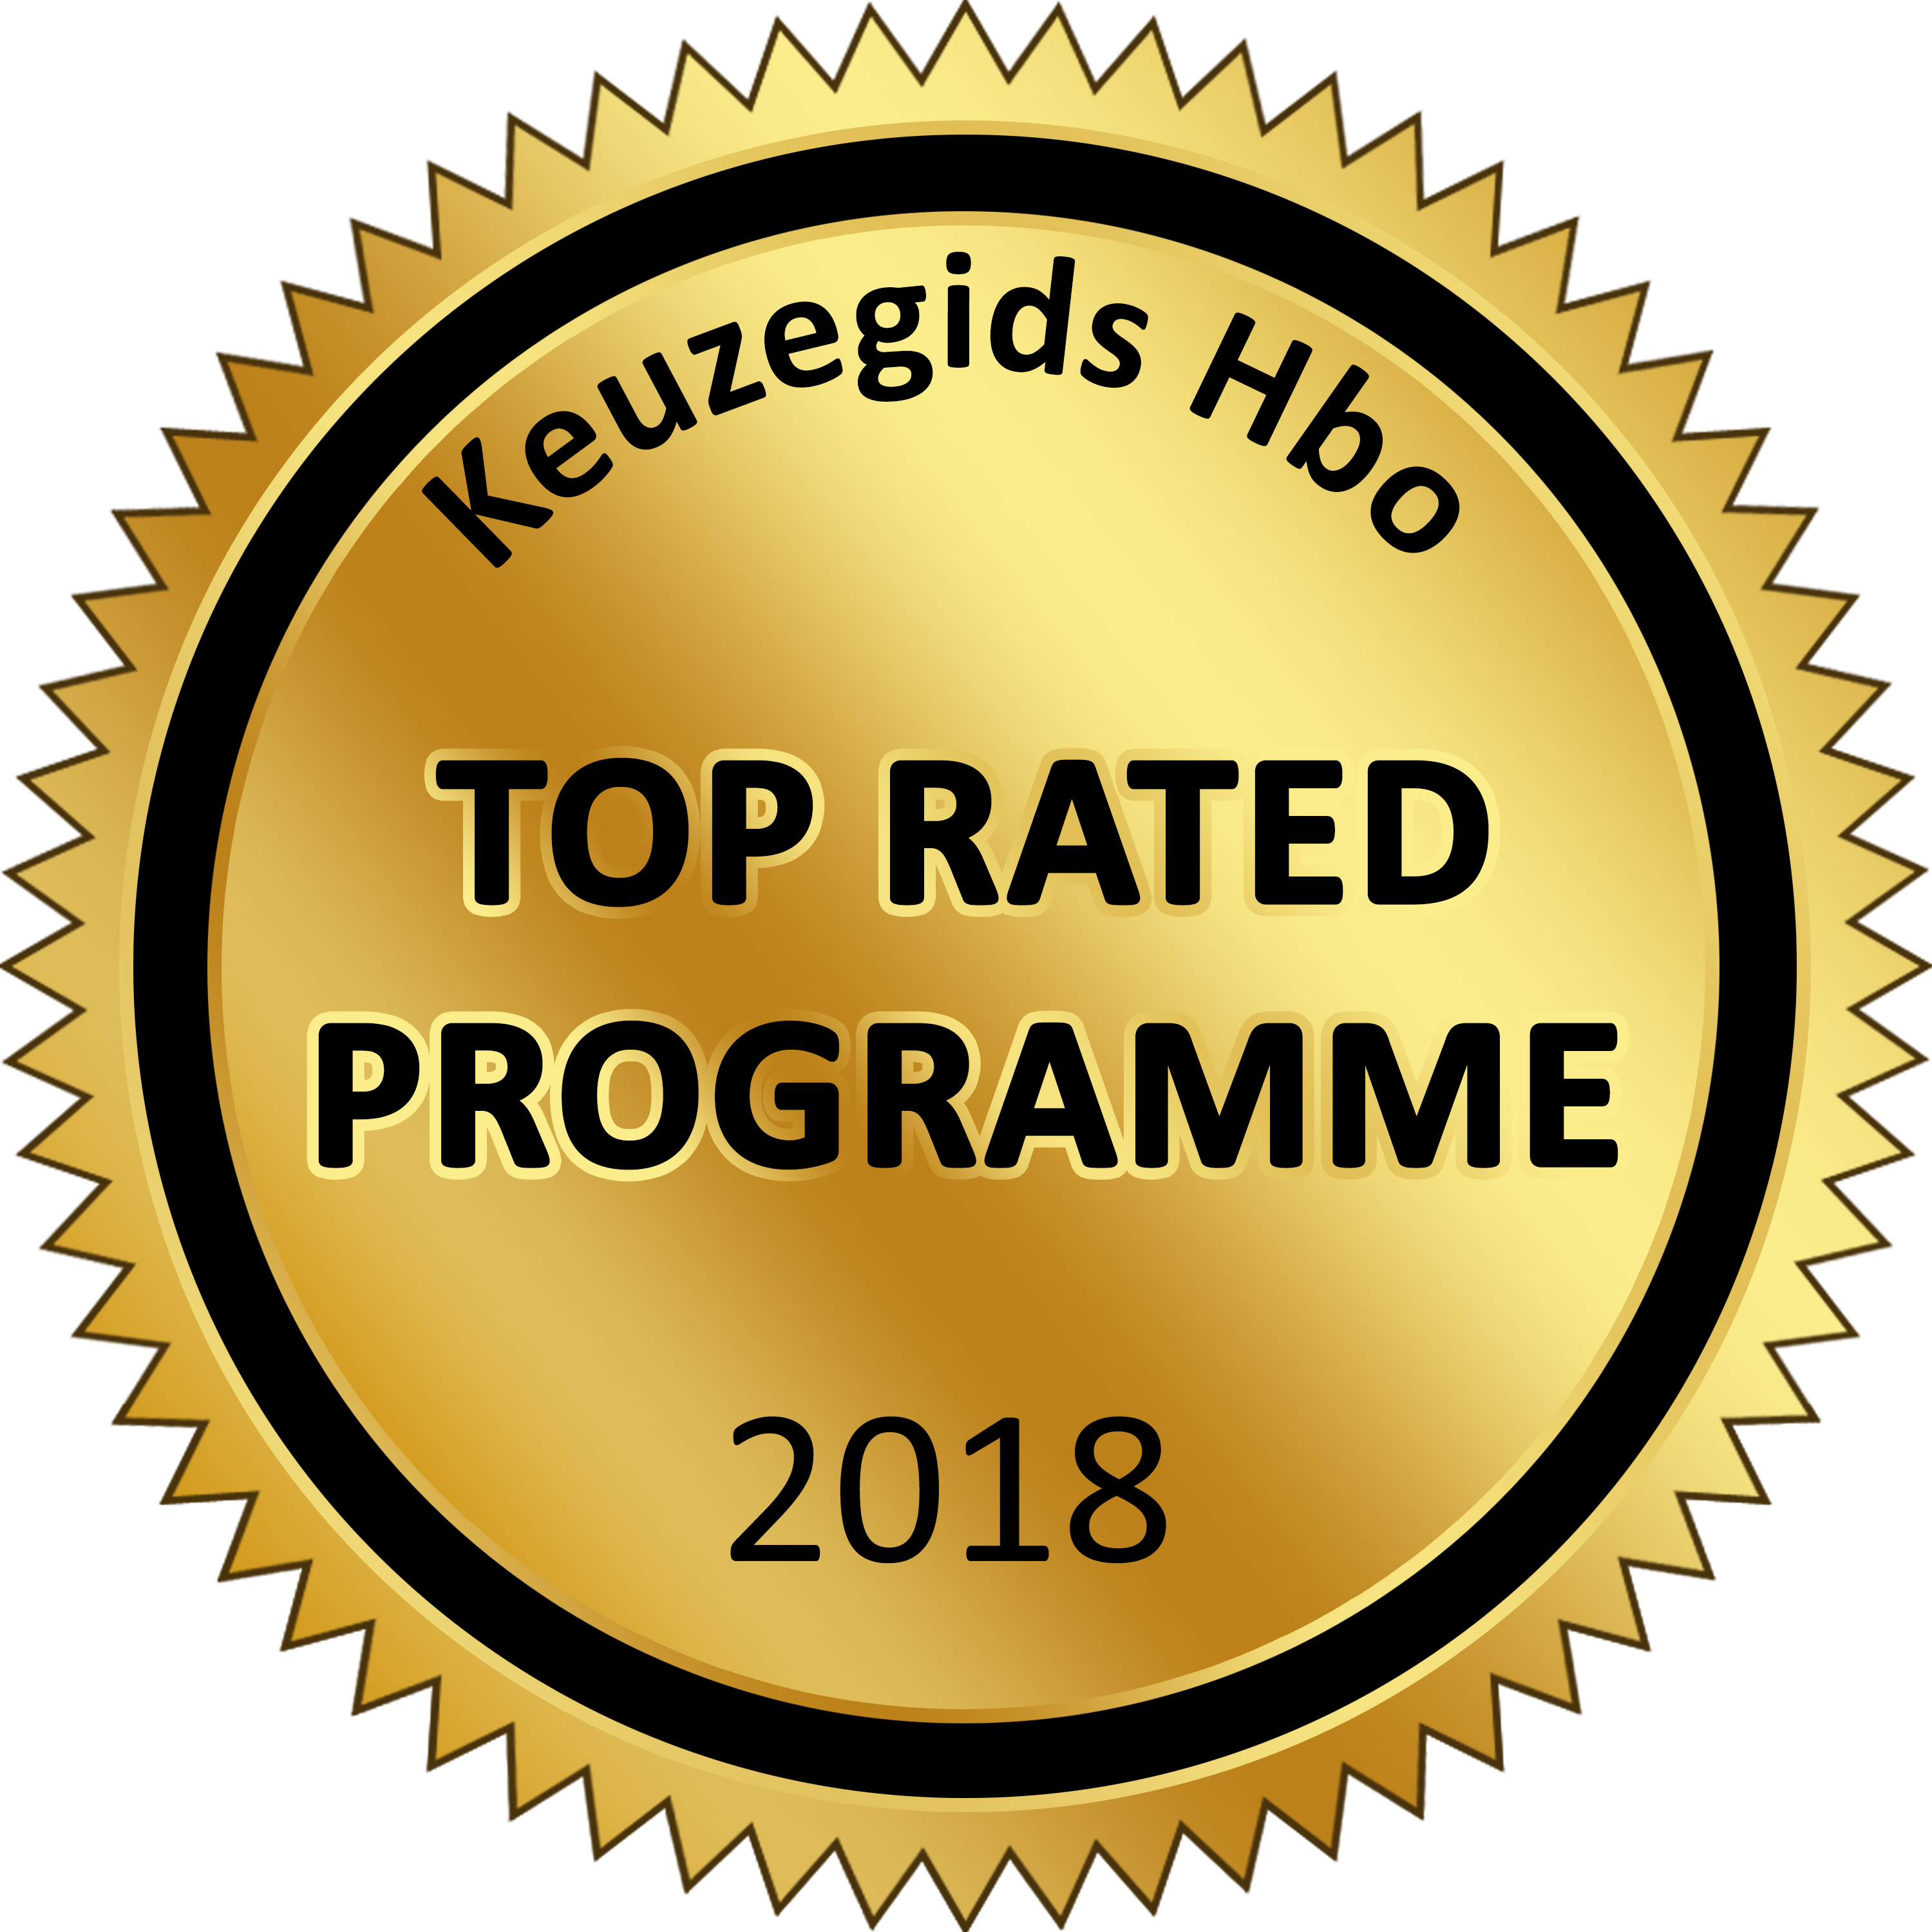 hbo18_seal top rated programme_highres.png